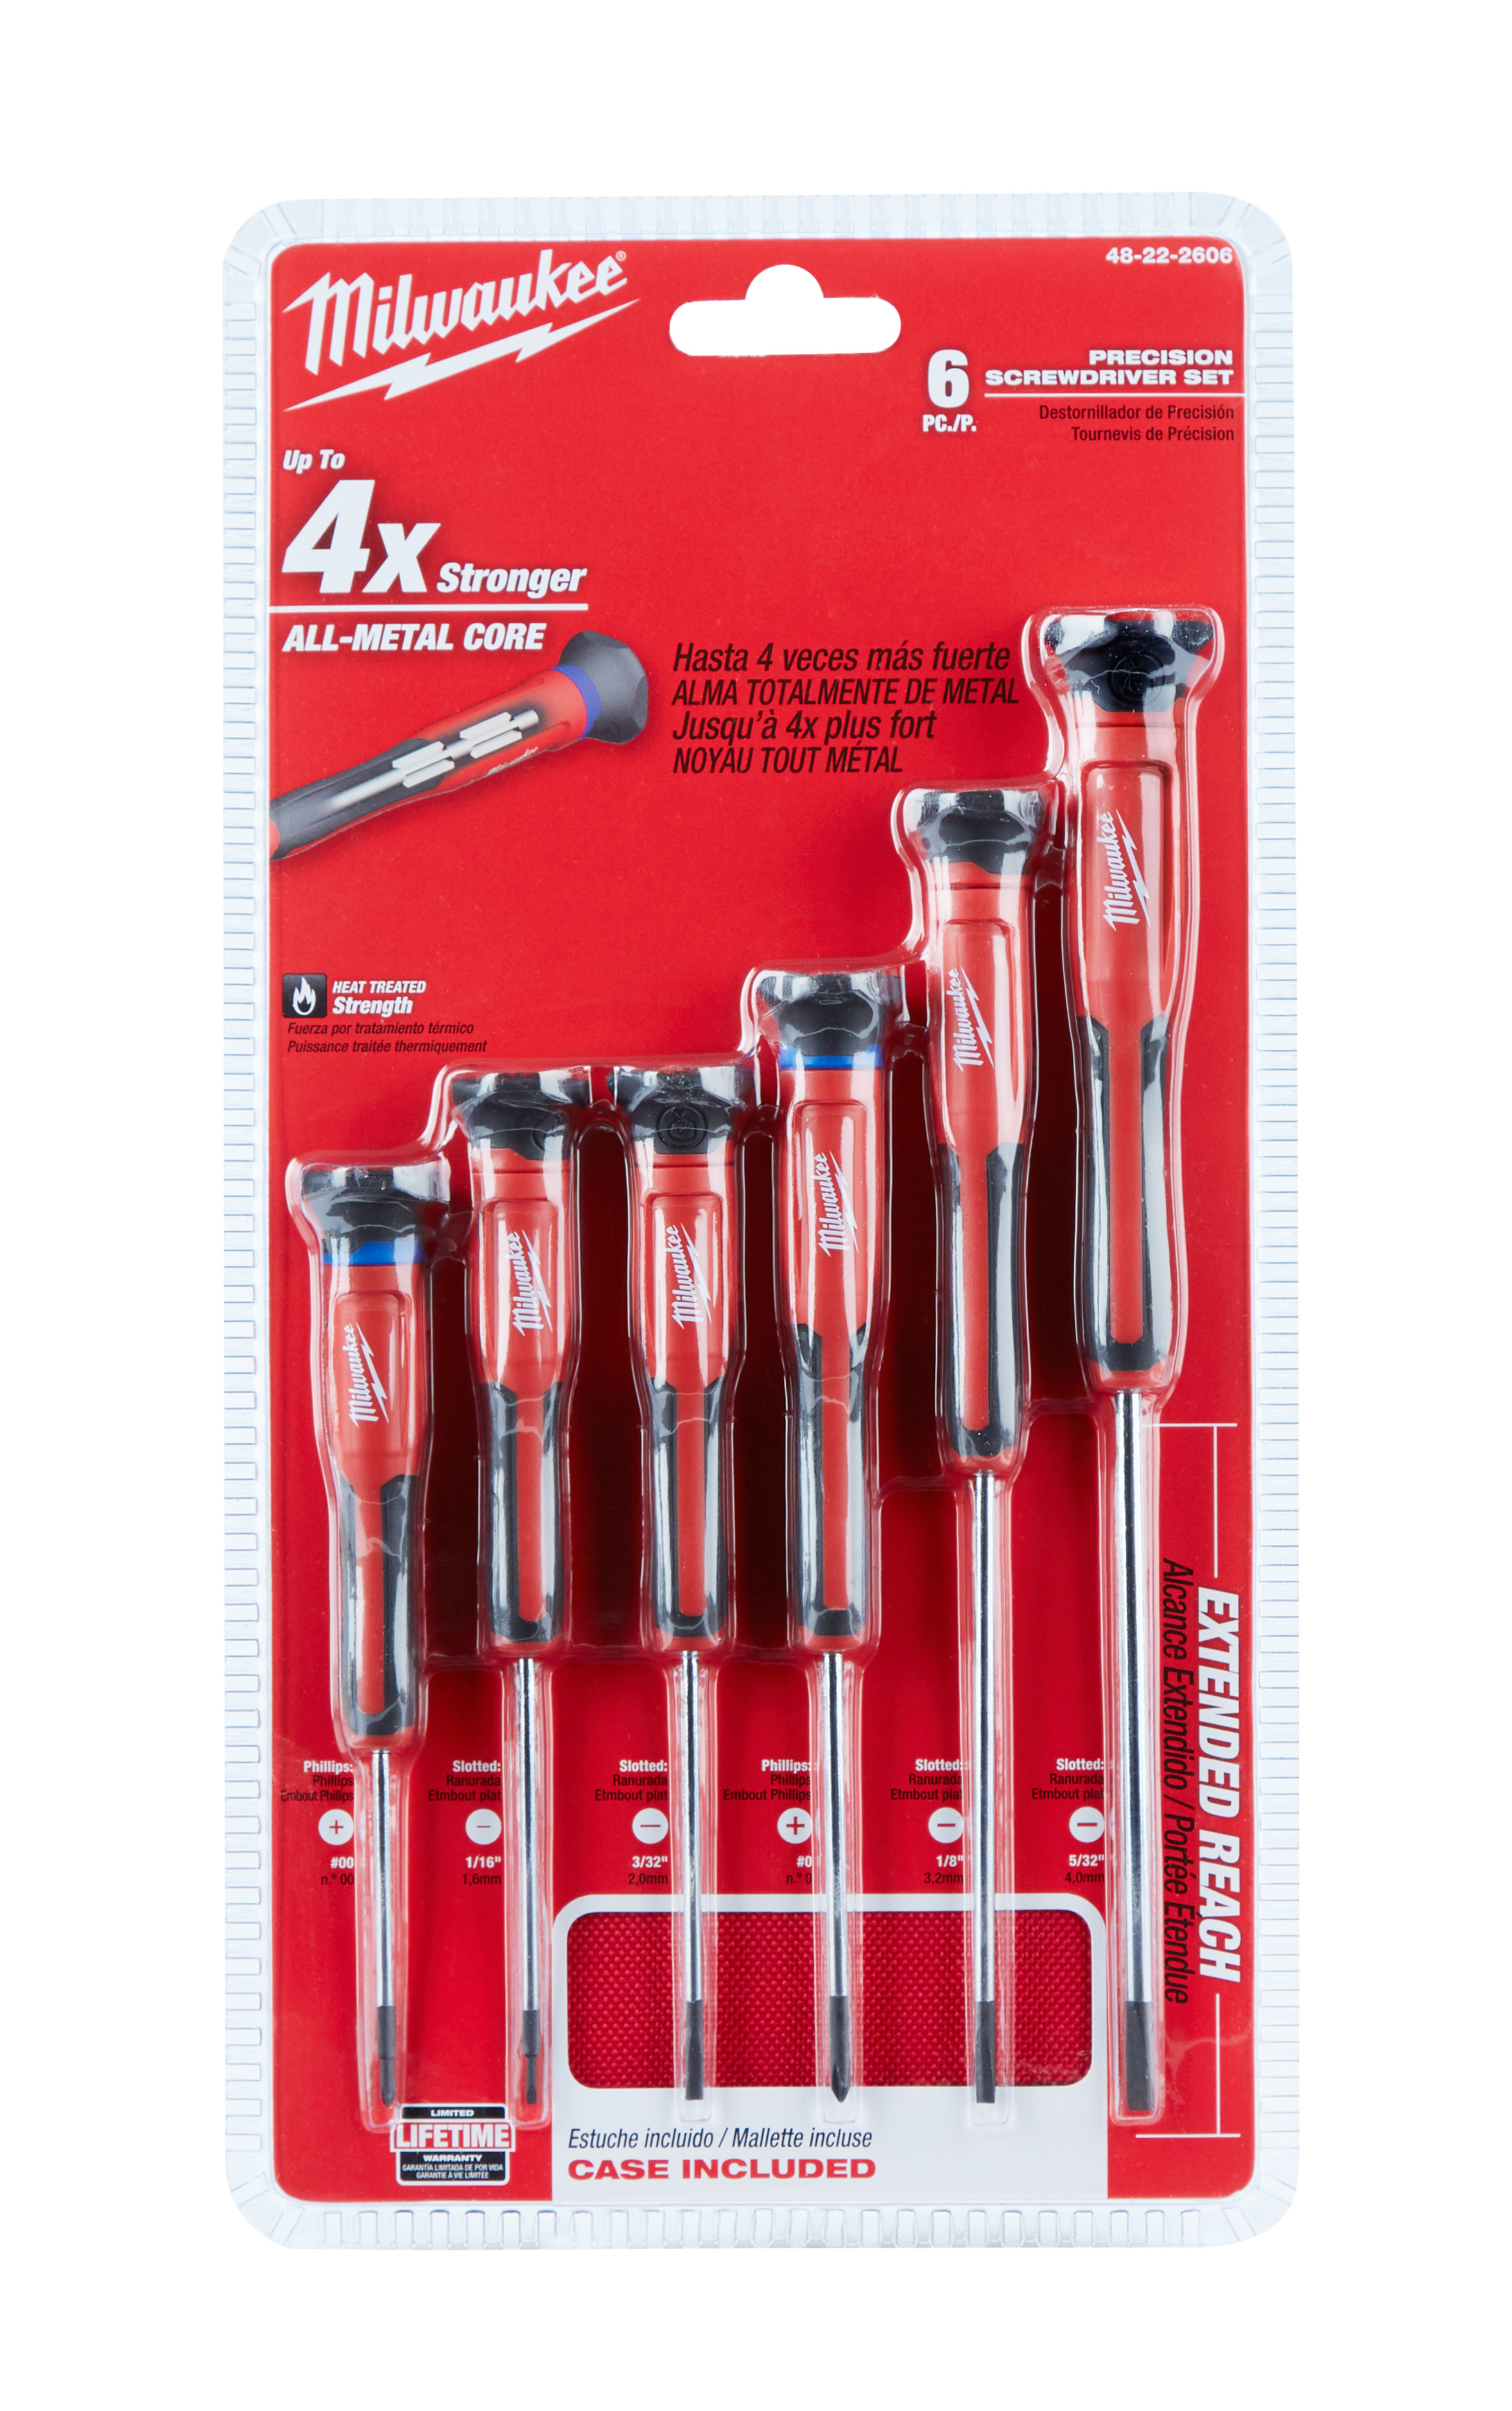 Milwaukee 48-22-2606 6pc Precision Screwdriver Set